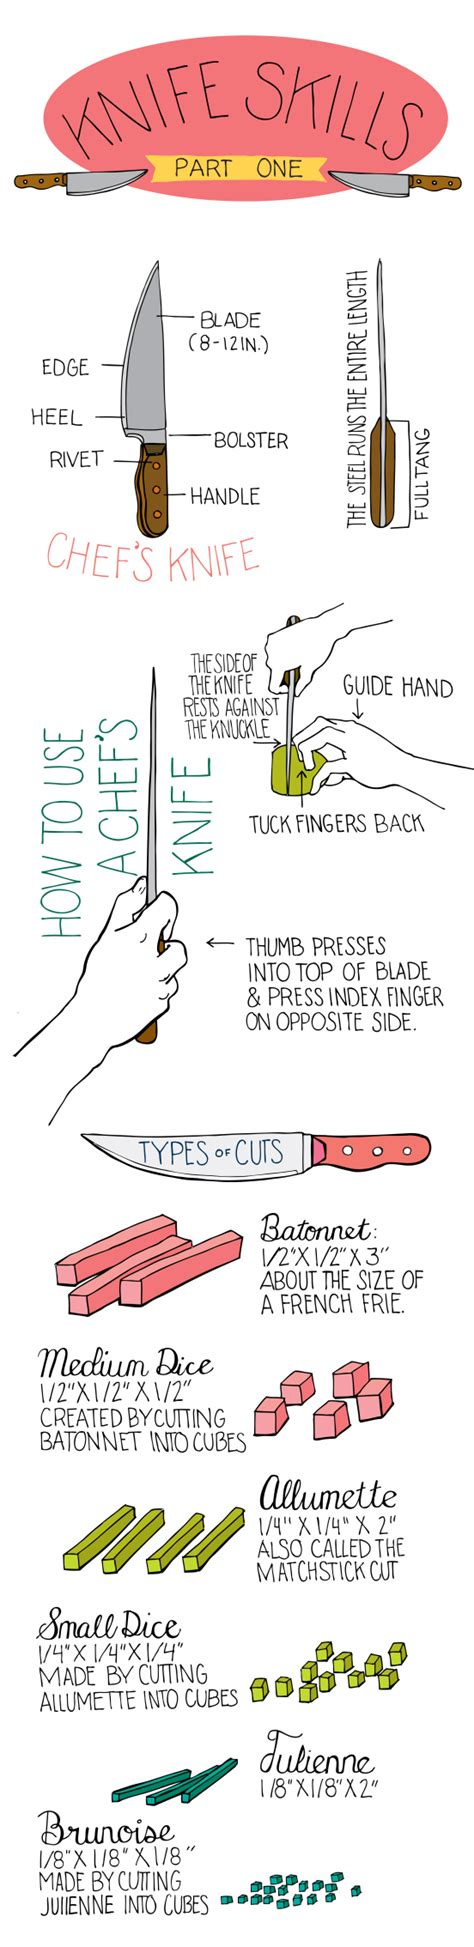 types of crop cuts culinary arts illustrated bites